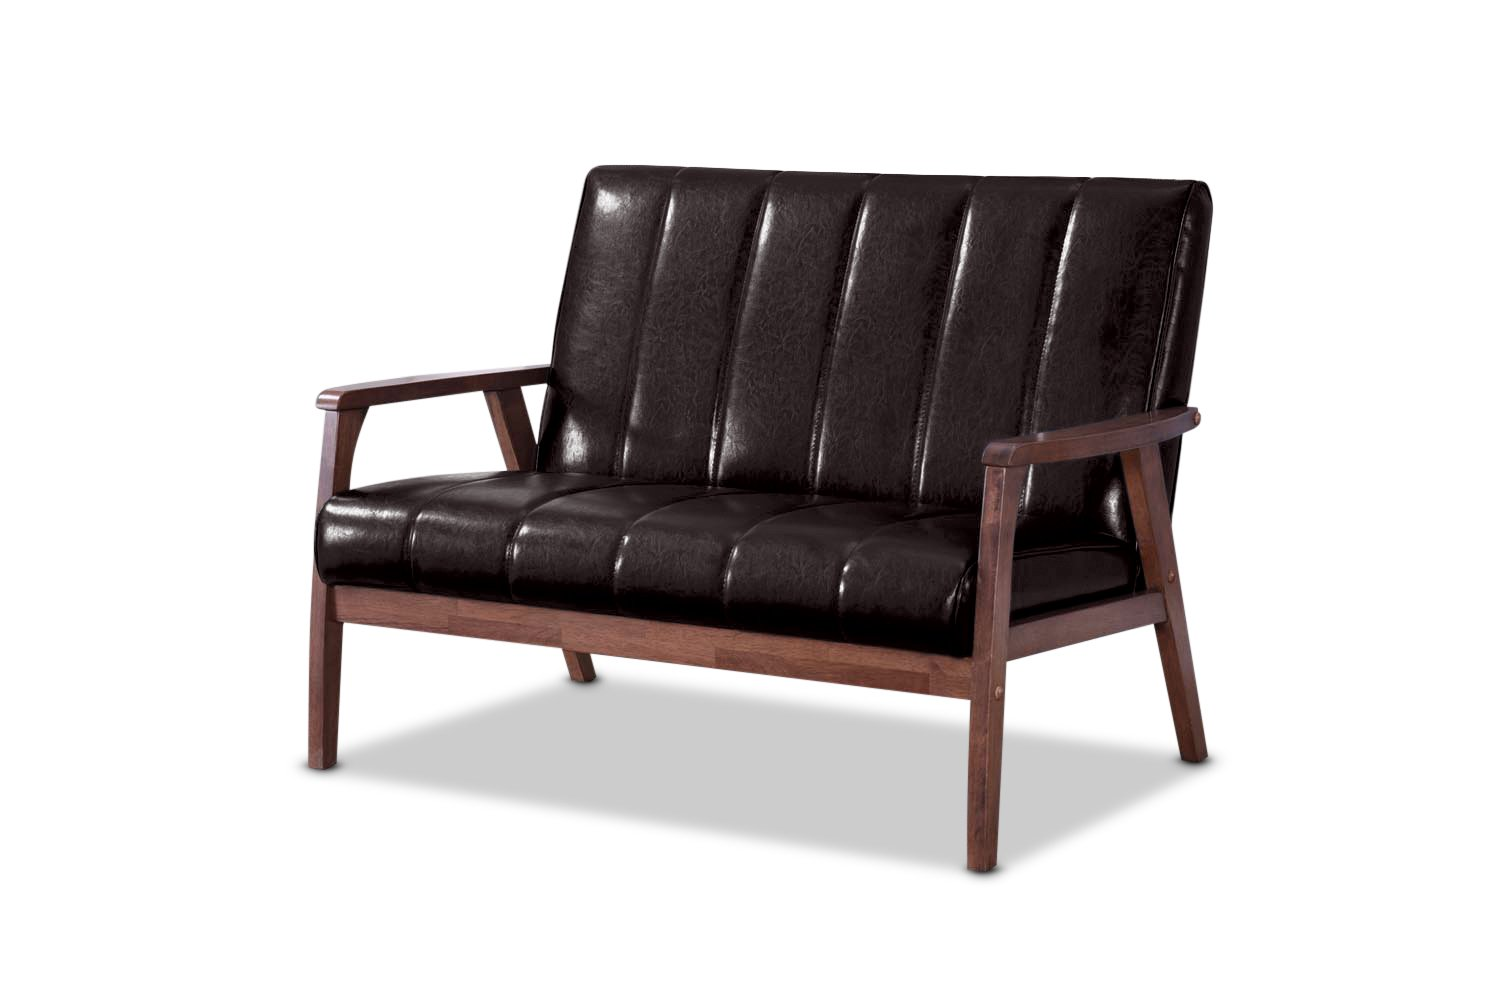 Baxton Studio Nikko Mid-century Modern Scandinavian Style Dark Brown Faux Leather Wooden 2-Seater Loveseat by Baxton Furniture Studios (Image #1)